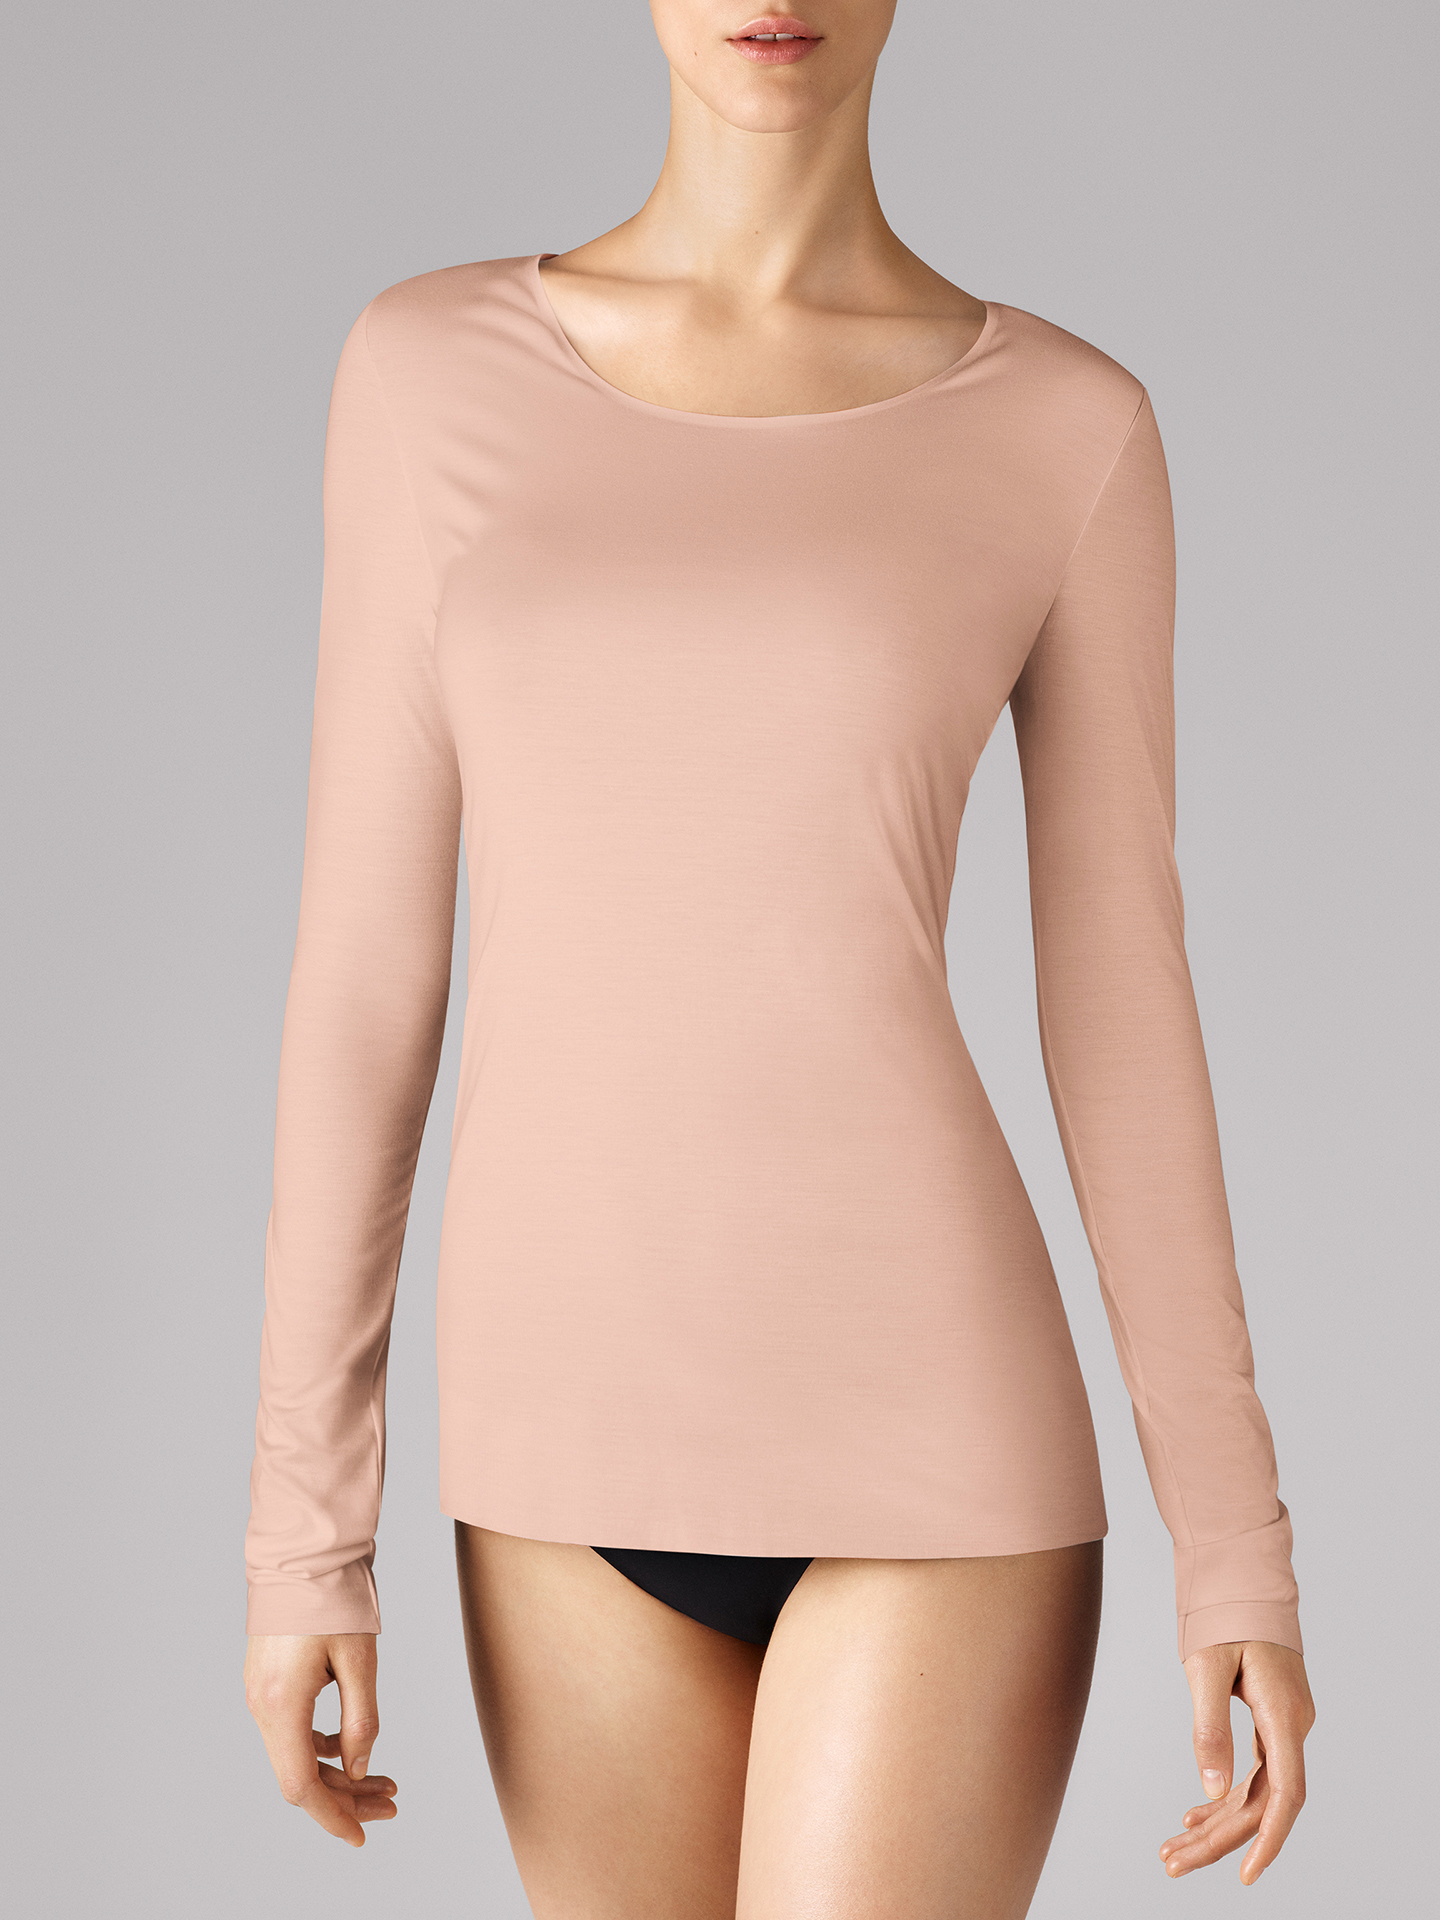 Oberteile - Pure Pullover 4752 M  - Onlineshop Wolford